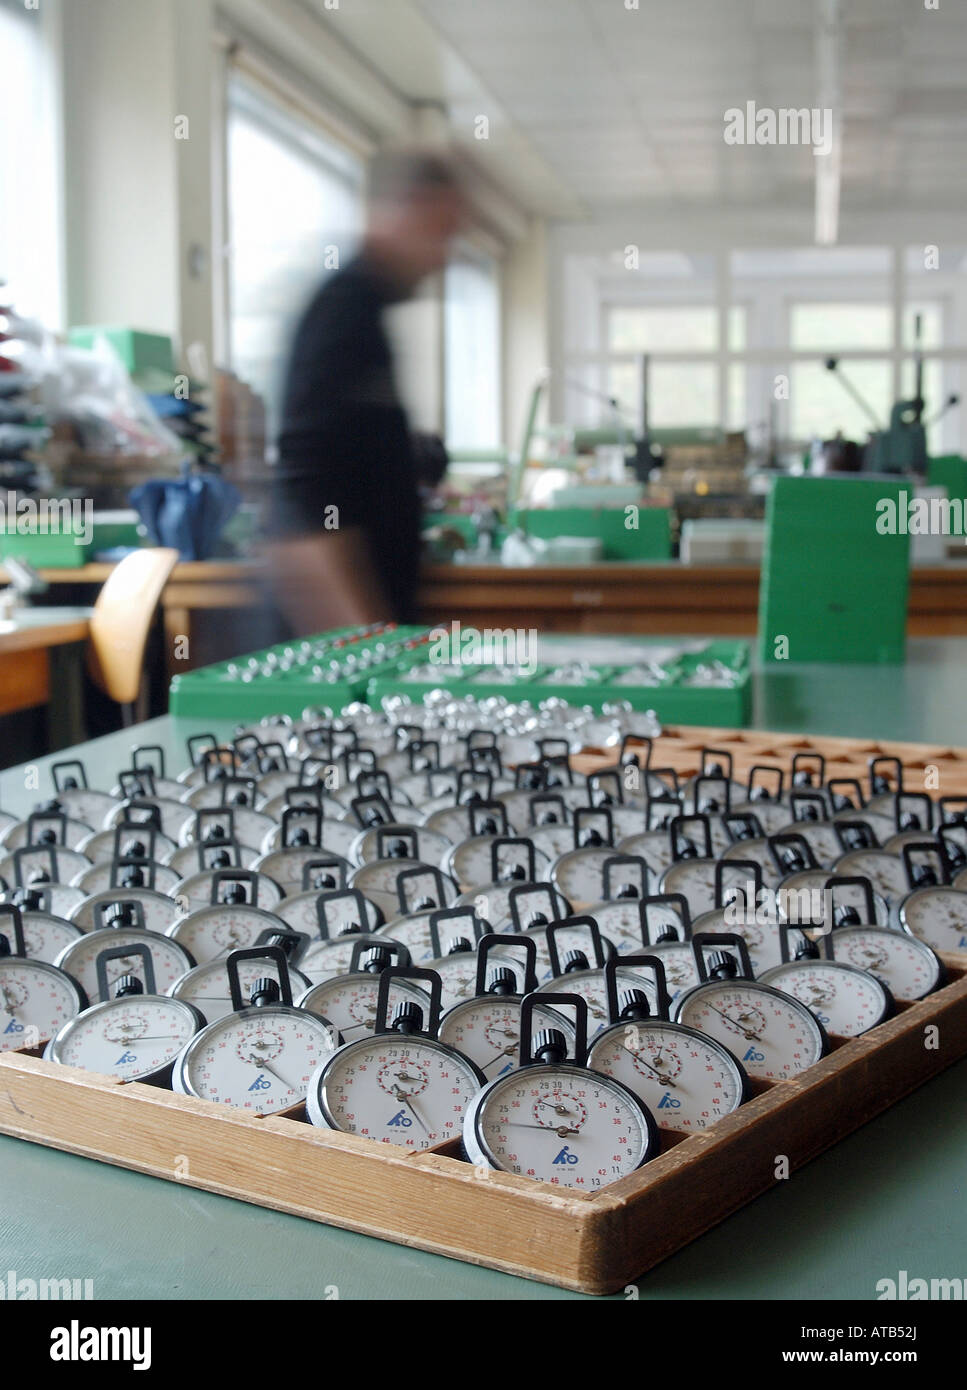 Stopwatches at ADOLF HANHART GmbH & Co., Germany - Stock Image